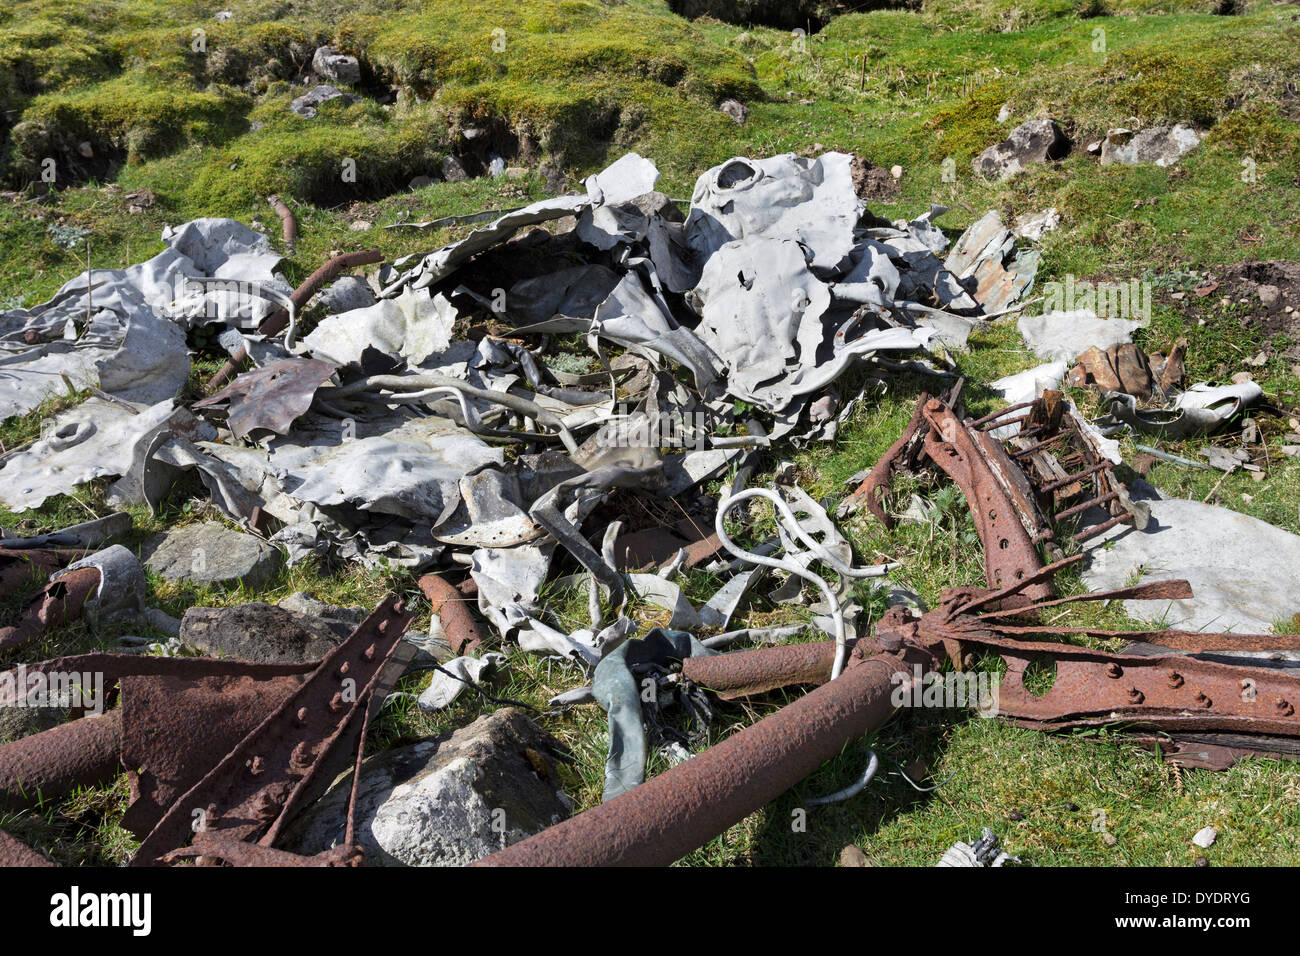 Wreckage from a De Havilland Mosquito F.B Mk.VI TA525 Which Crashed in Cloud 14th February 1946 Castle Bolton Yorkshire Dales UK - Stock Image